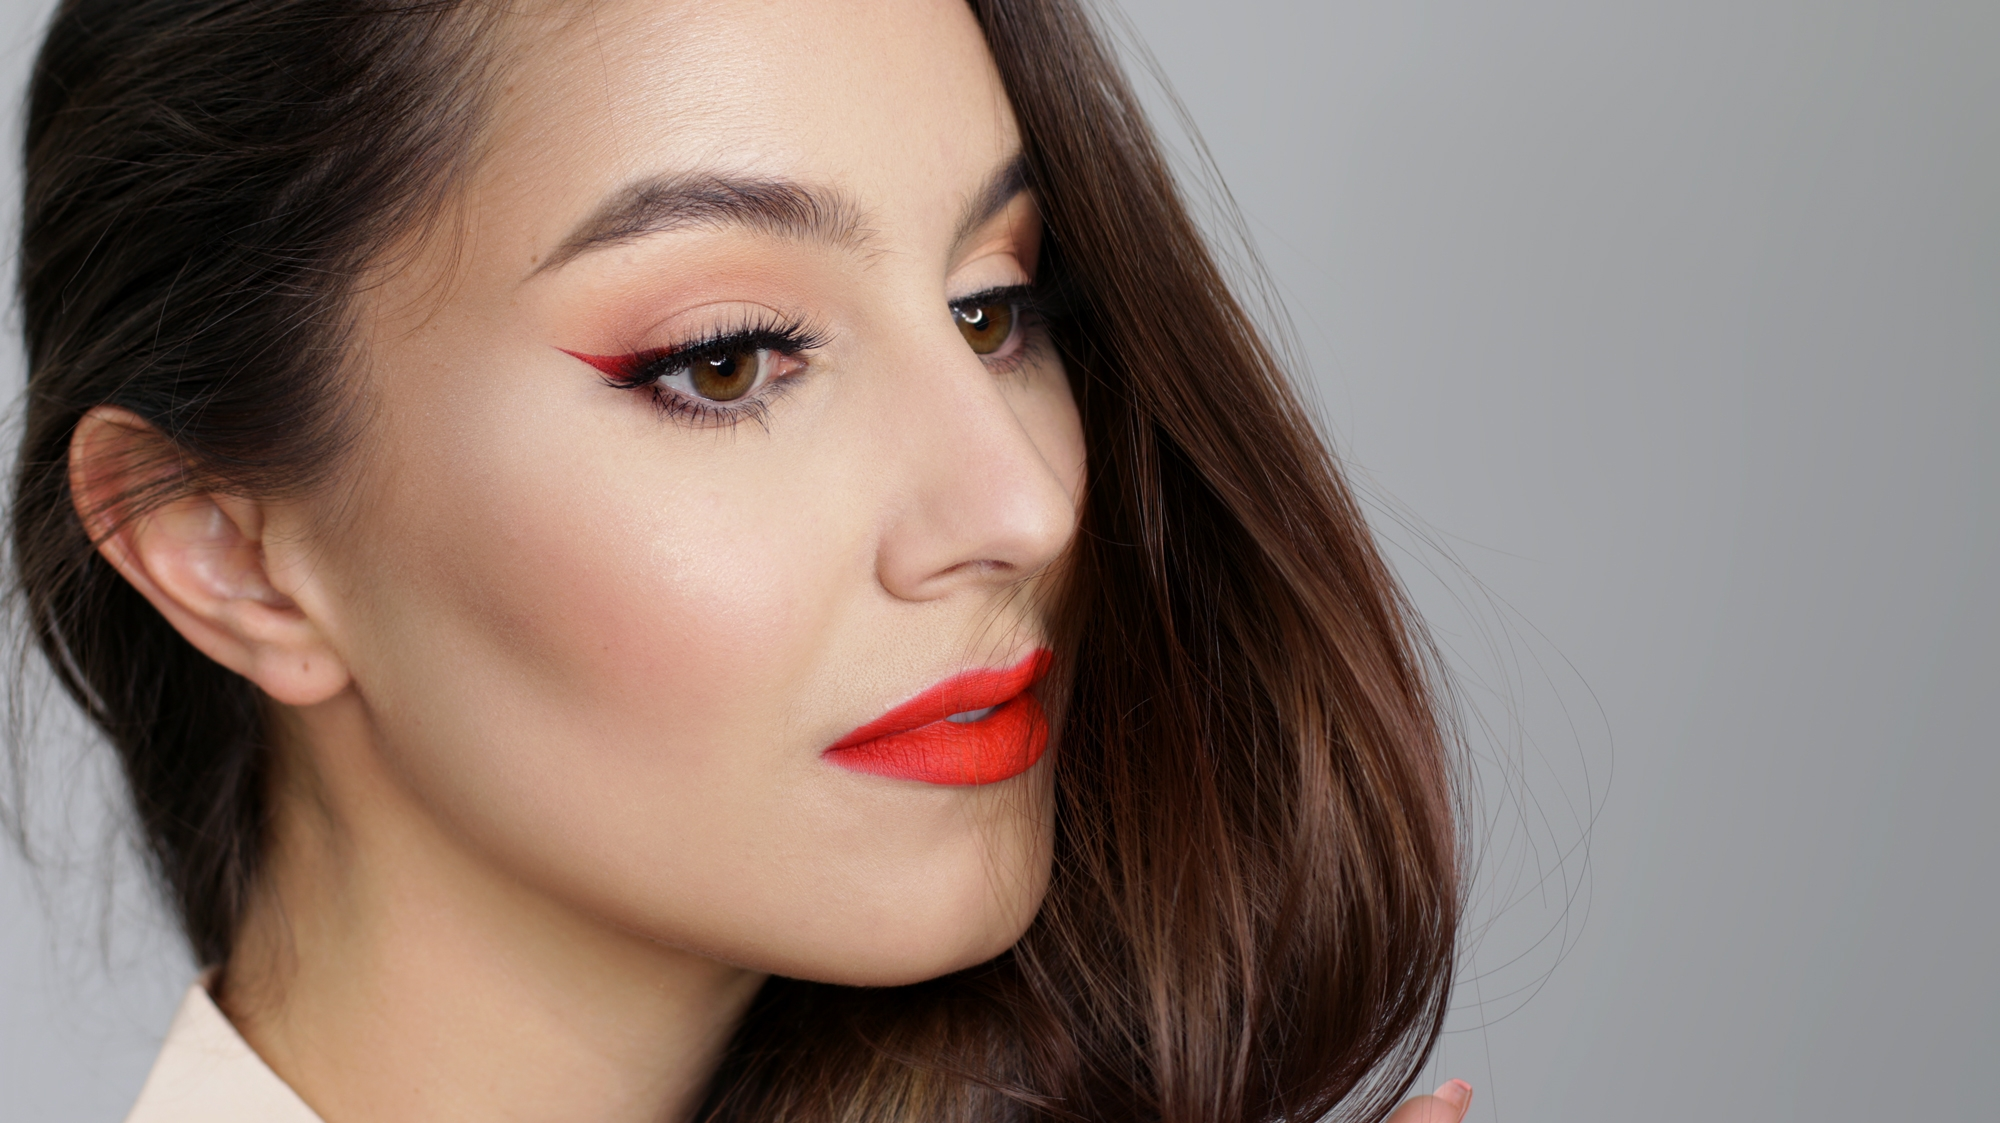 Ombre-winged-liner-red-lip-2-2000